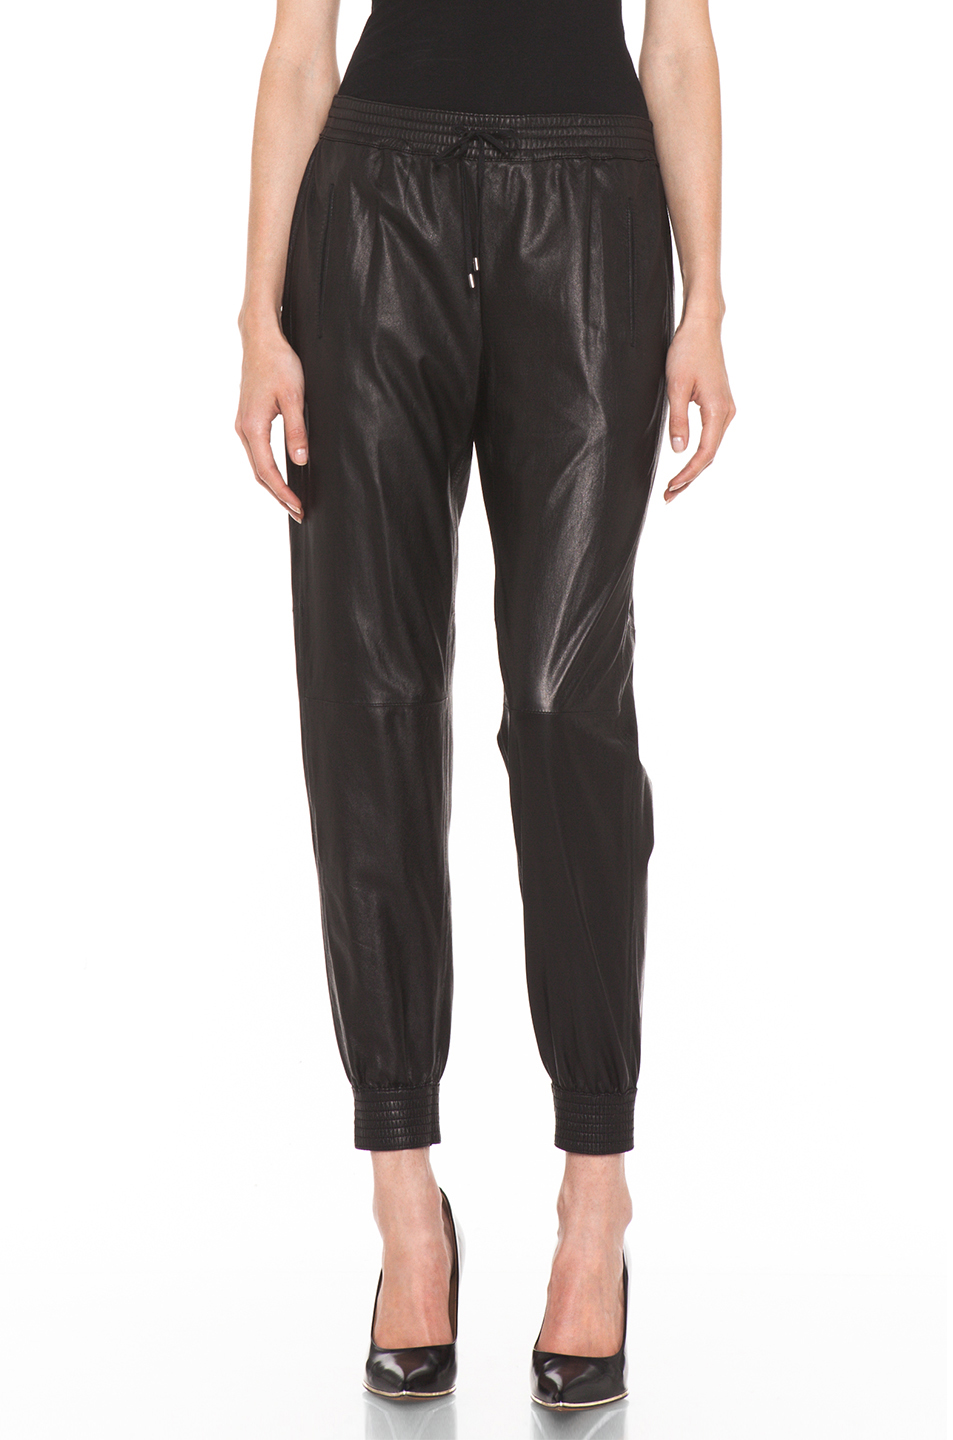 Leather Jogger Pants, Sweat Pants, She S, Clothes, Style, Fashion, Cuffs, Track, Outfits, Swag, Moda, Clothing, Leather Jogging Pants, Outfits Fo, Stylus, Fashion Styles, Arm Warmers, Runway, Fasion, Trucks, Sweatpants, Track And Field, Cufflinks, Dresses, Trainers, Cloths, Vestidos, Outfit Posts. Find this Pin and more on Fashion by Jennifer Tierney.